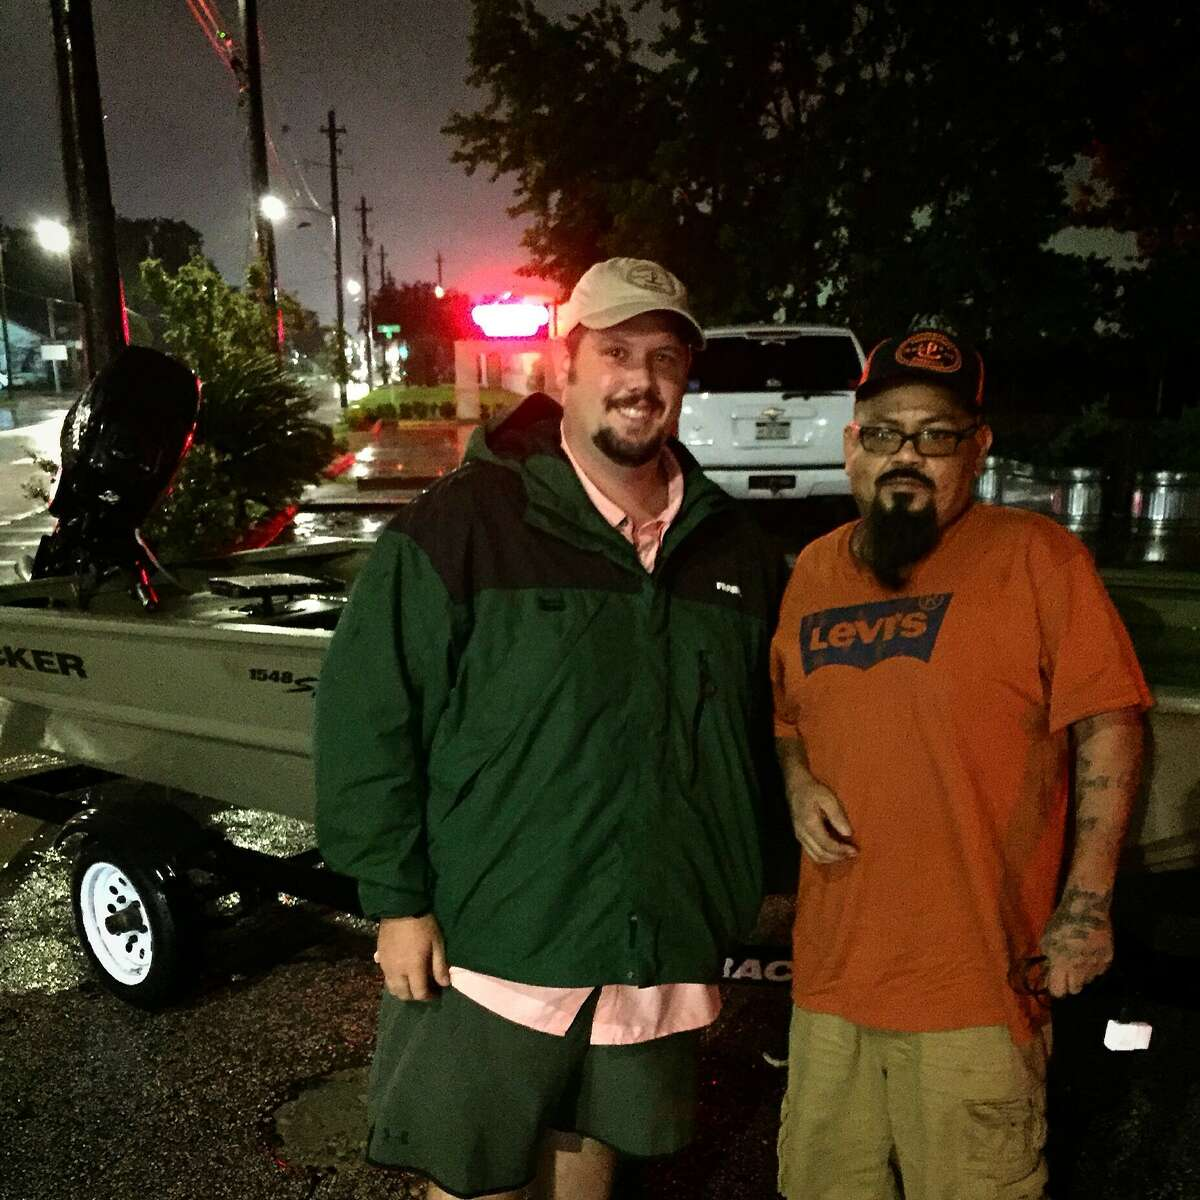 Pinkerton Barbecue's Grant Pinkerton, left, with employee Jose Pacheco, after Pacheco was rescued from rising flood waters during Hurricane Harvey. Pinkerton used social media to help facilitate the rescue.